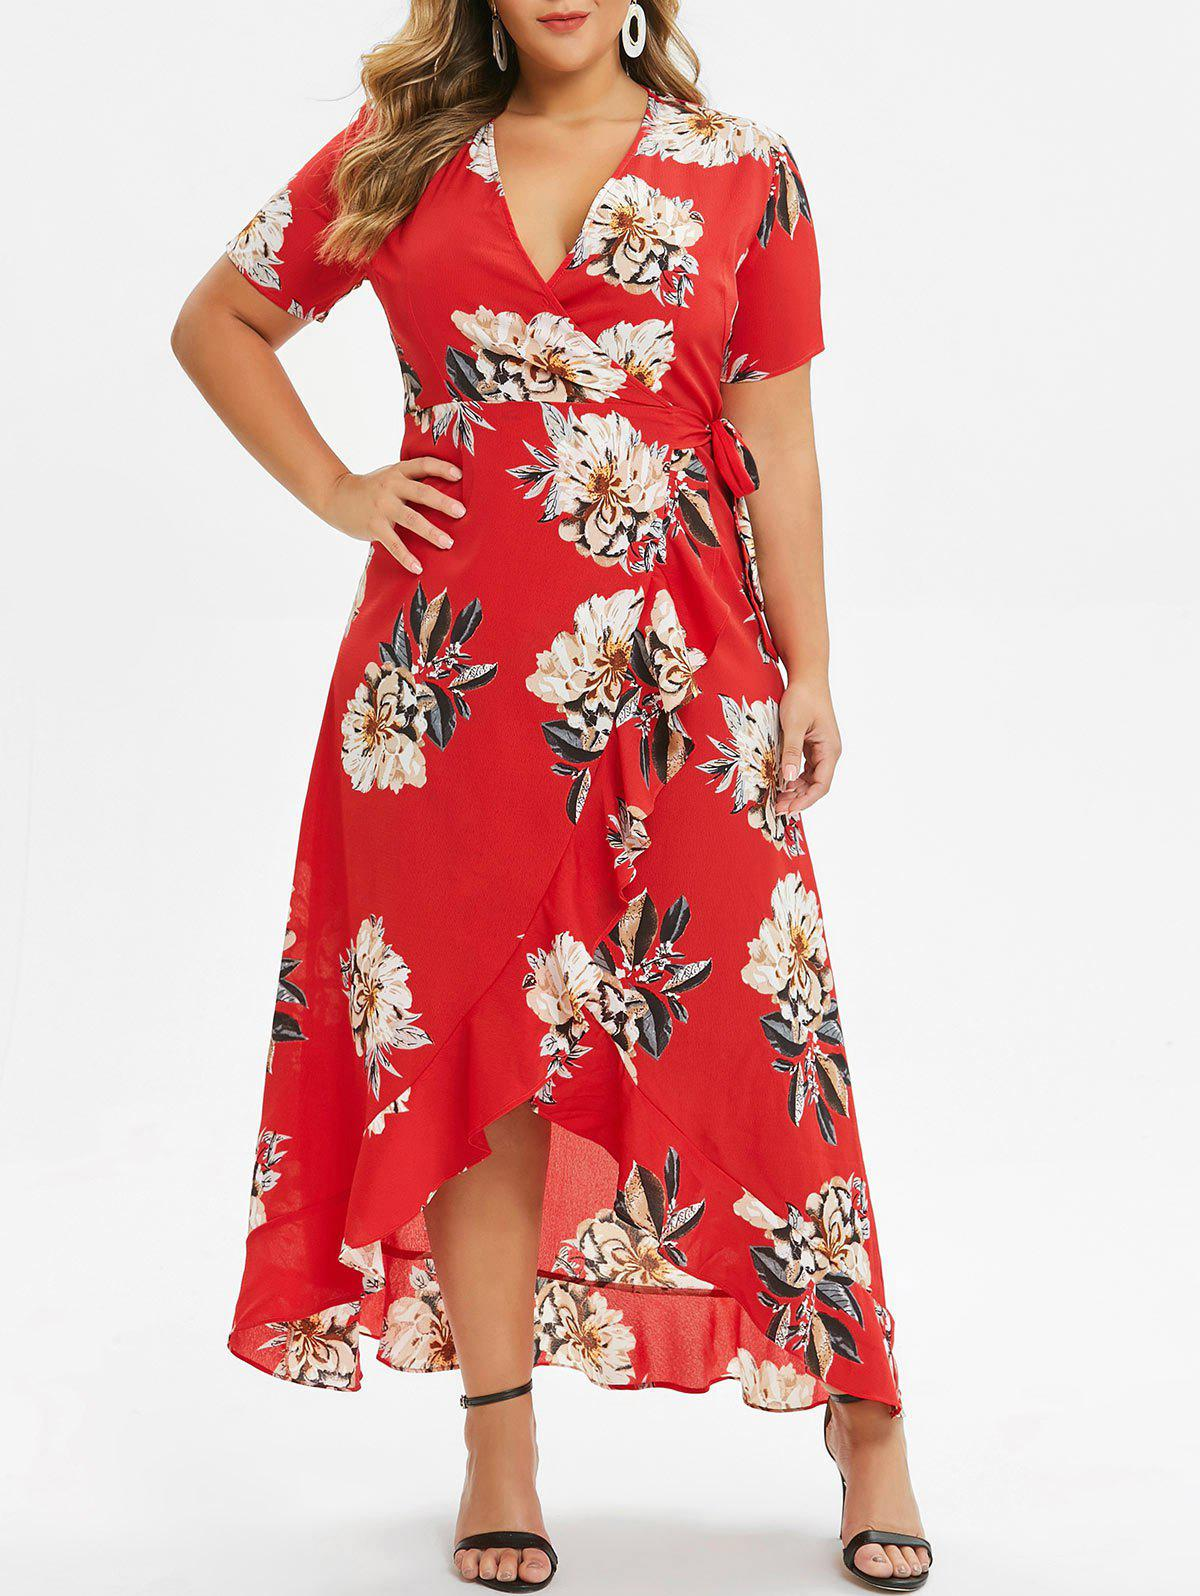 Floral Ruffles Wrap Maxi Plus Size Dress